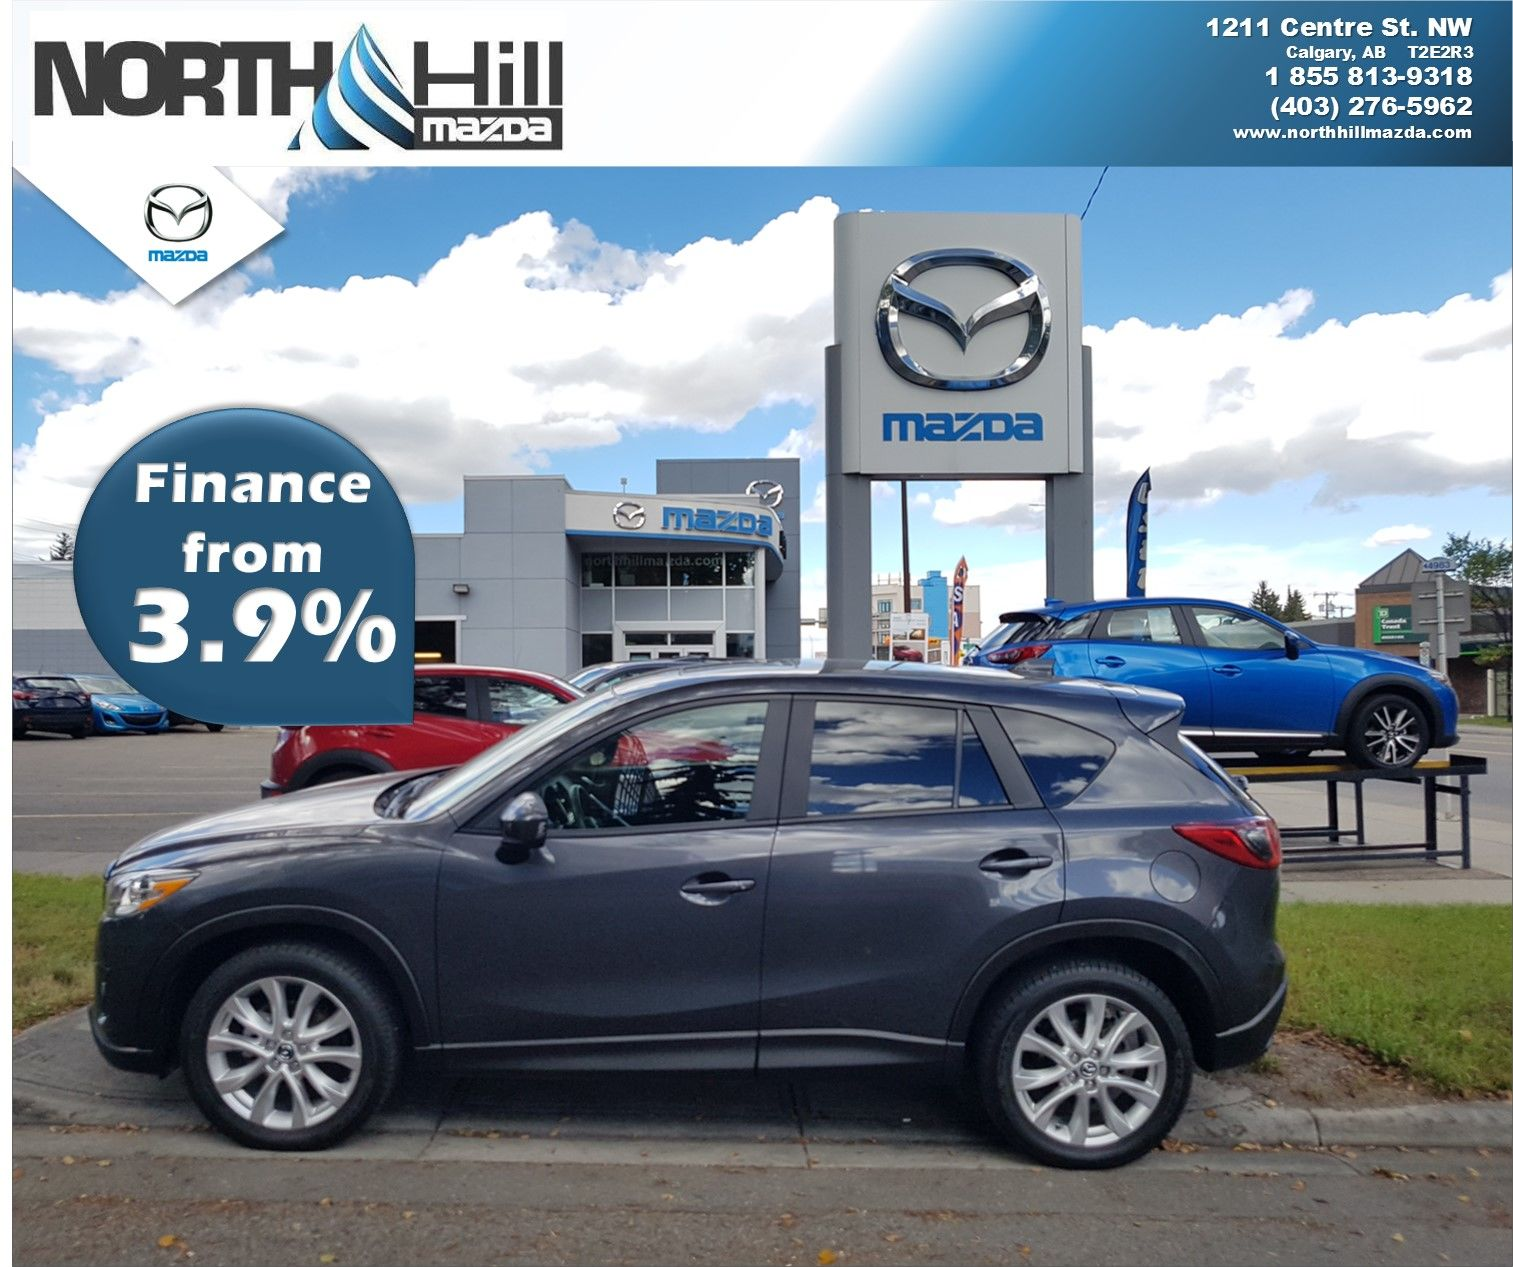 2014 mazda cx 5 gt awd at w winter tires for sale in. Black Bedroom Furniture Sets. Home Design Ideas